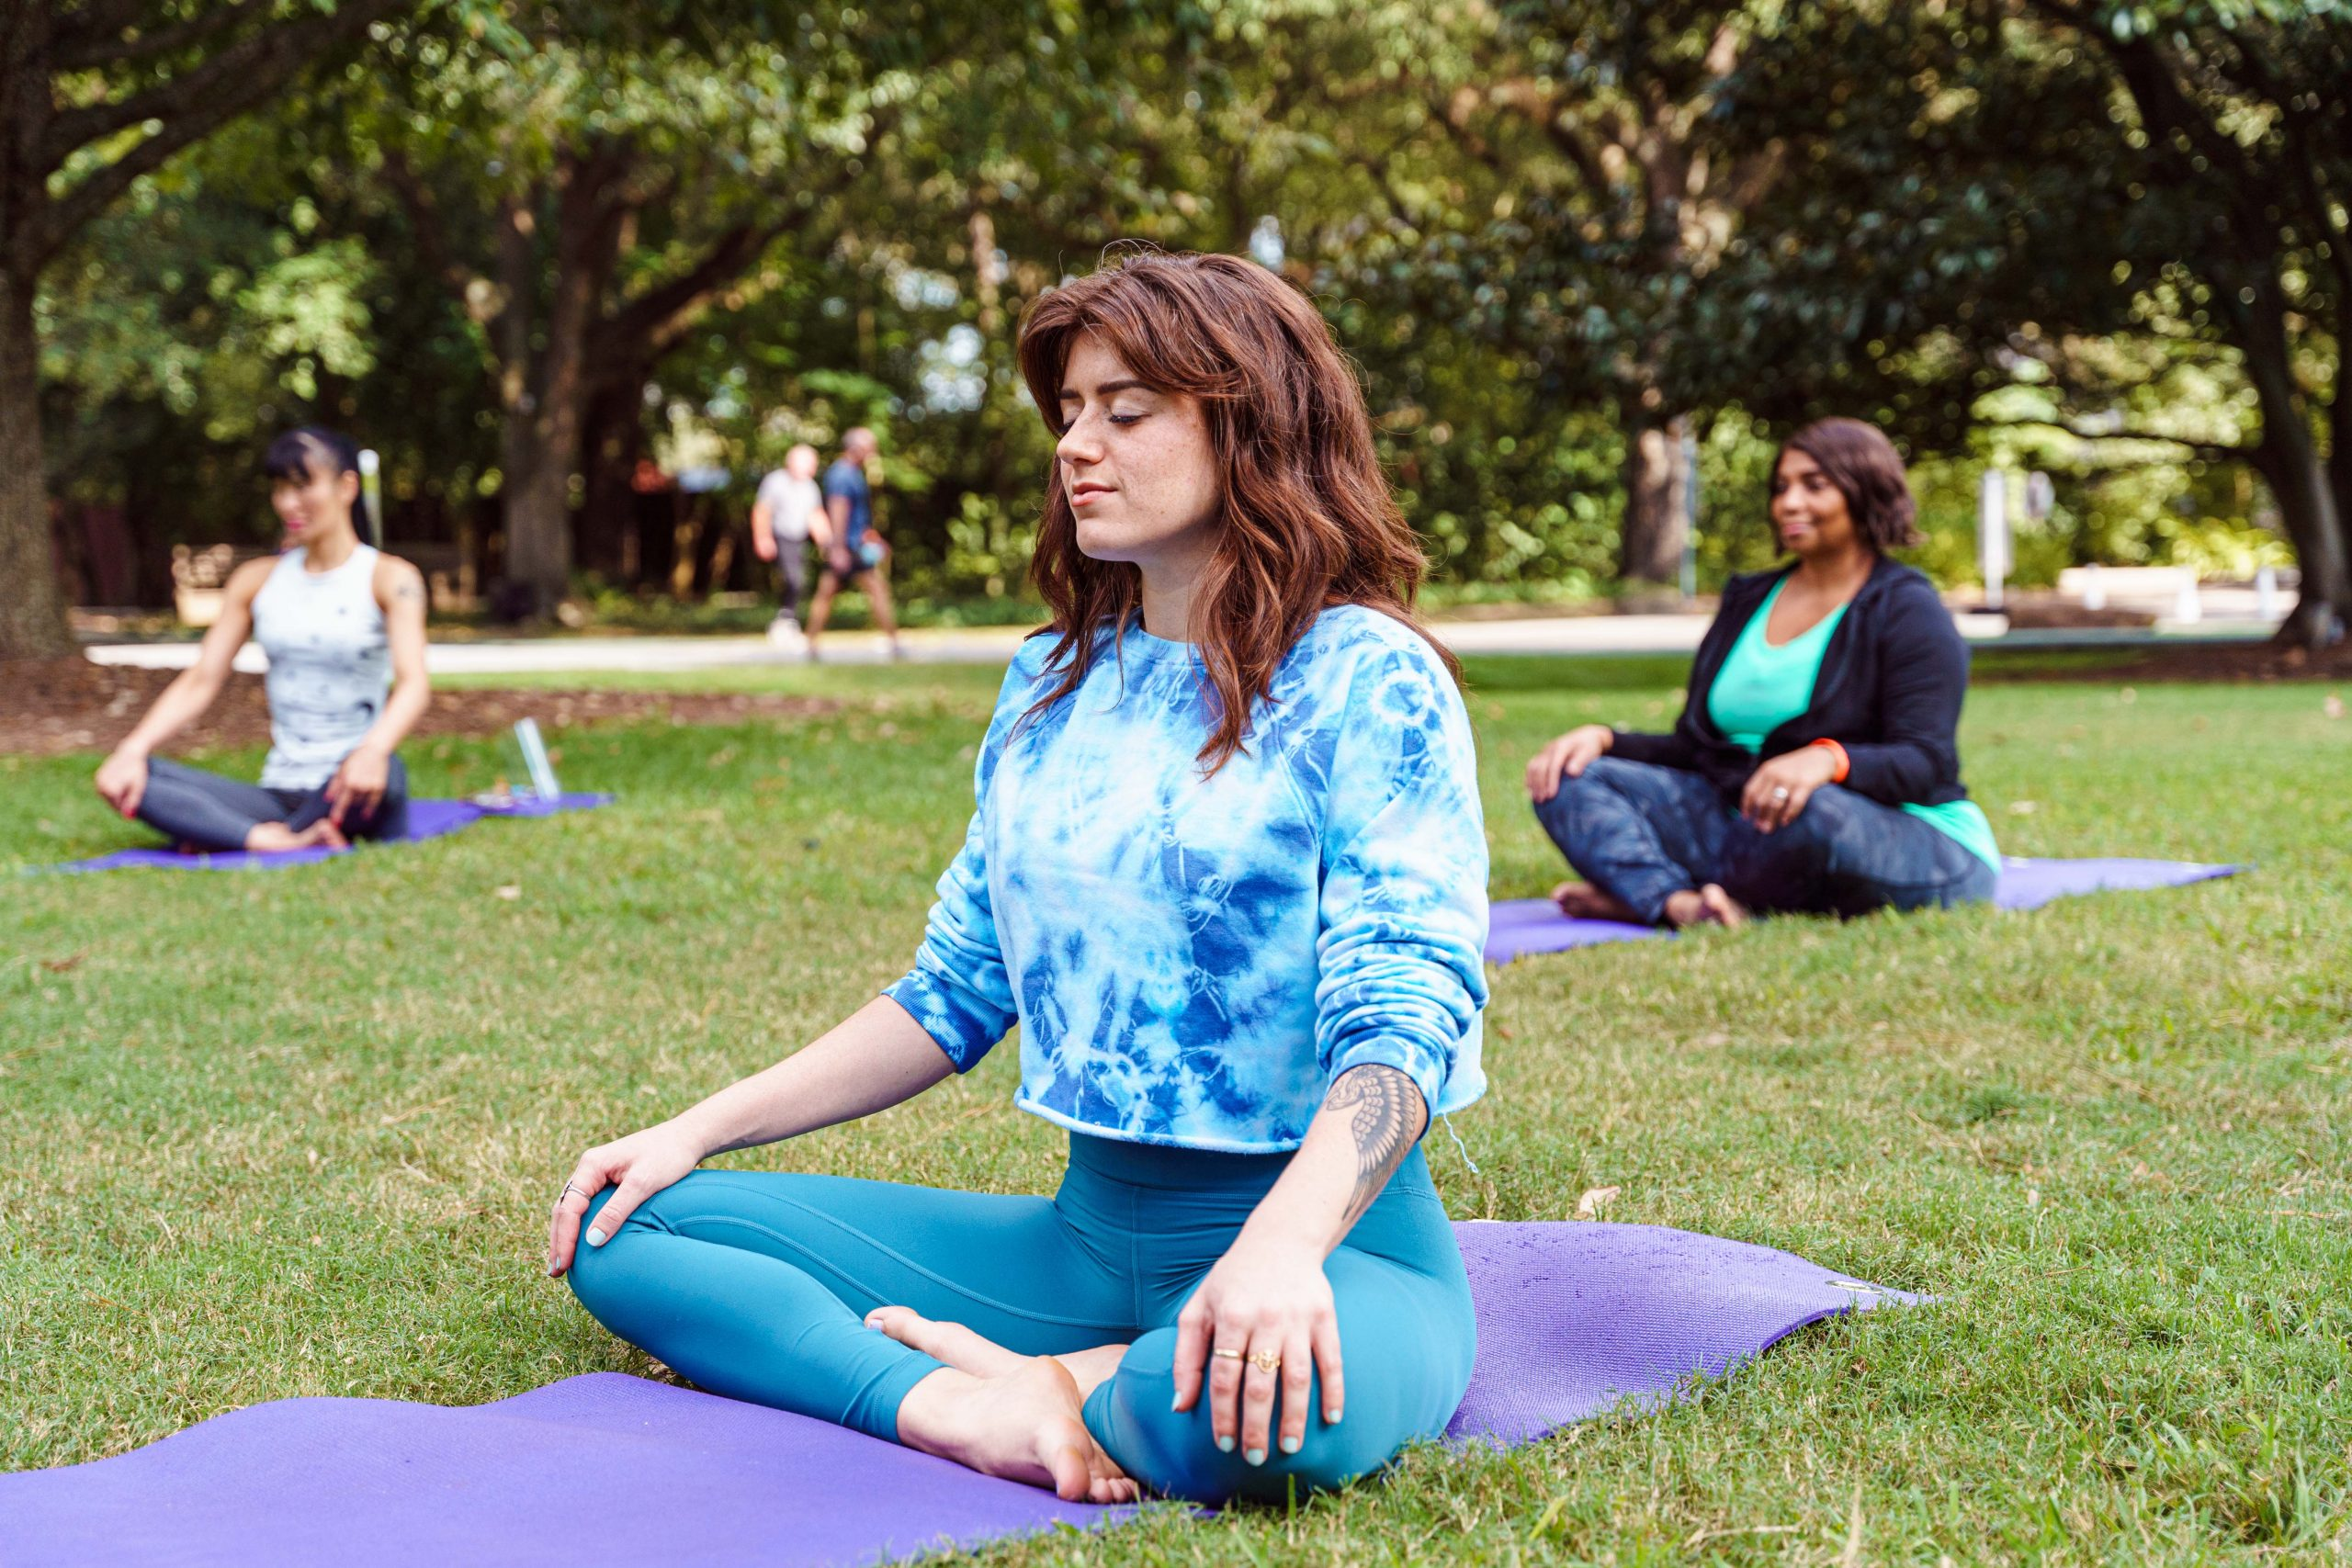 A girl in blue sitting on a yoga mat